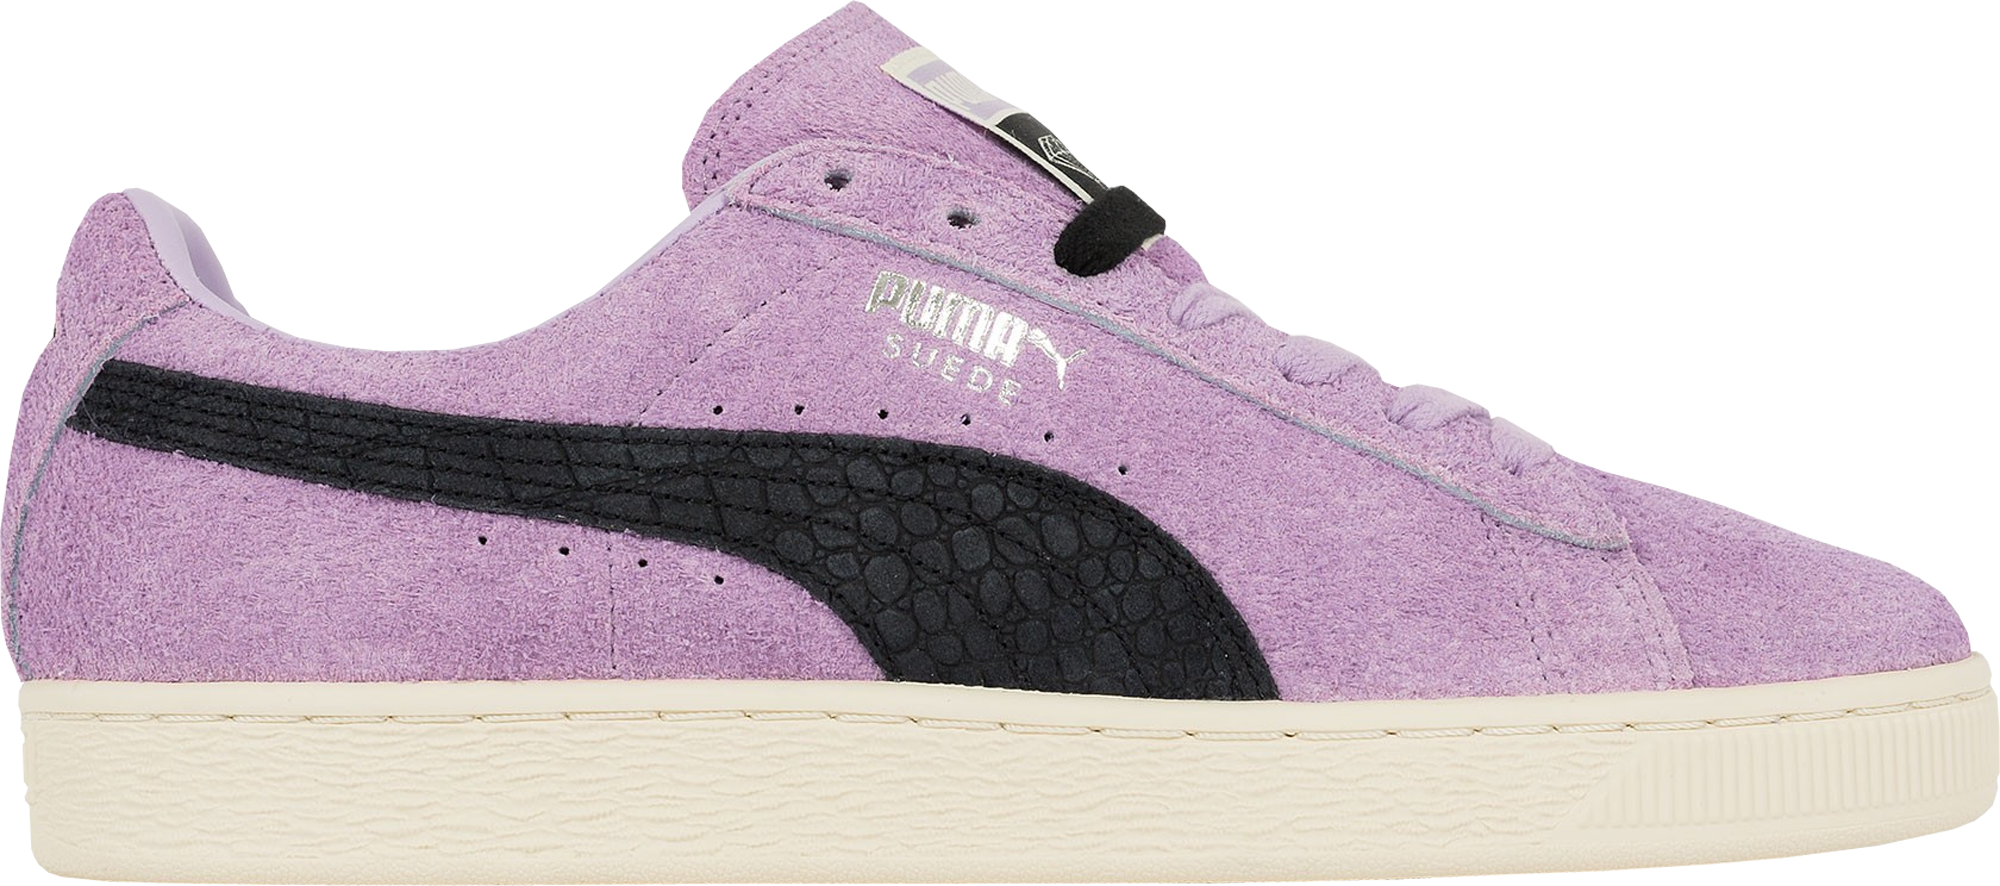 Puma Suede Diamond Supply Co. Orchid Bloom